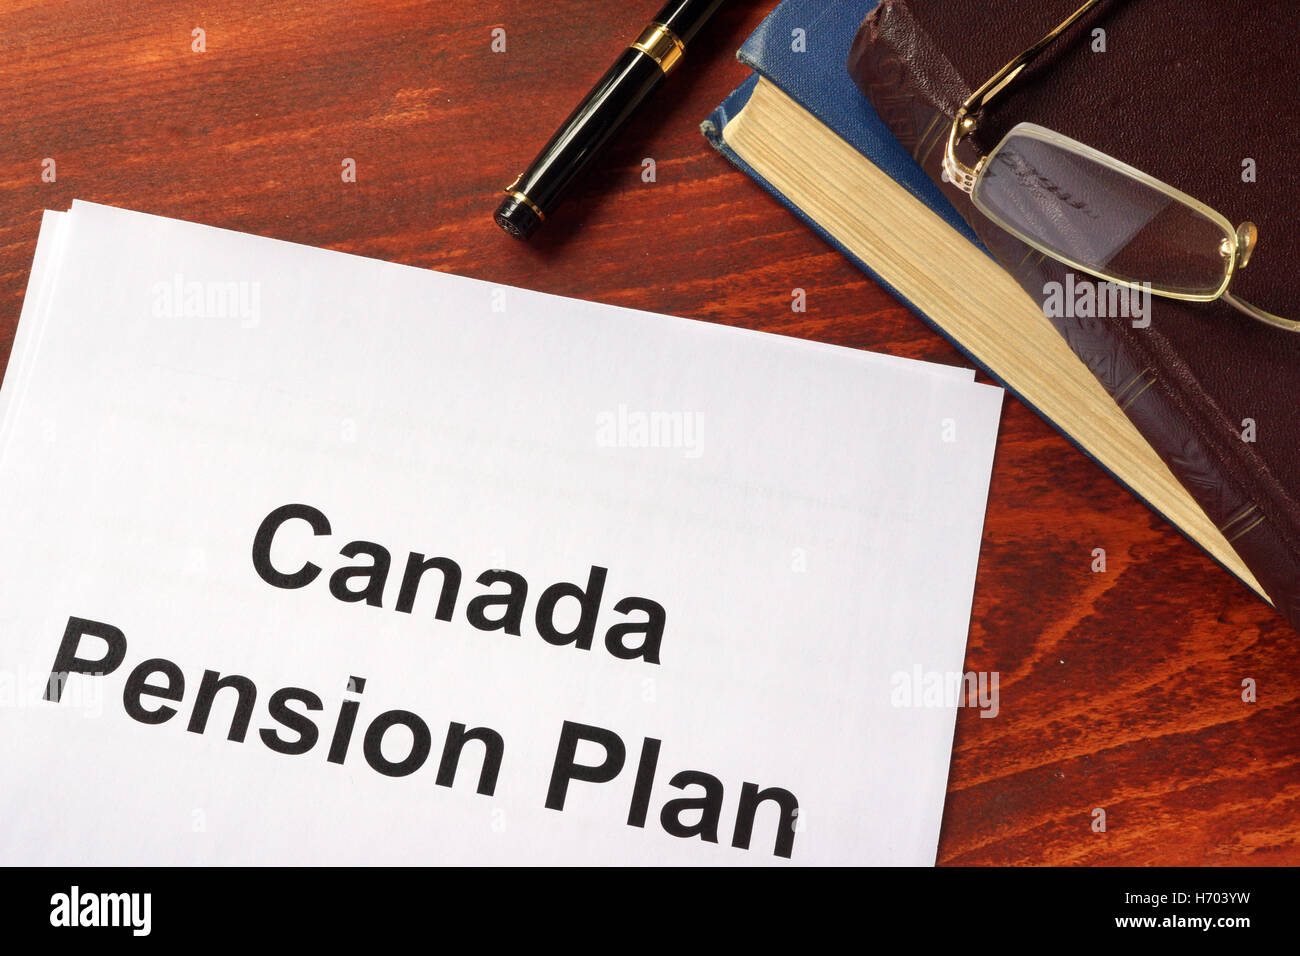 Canada Pension Plan CPP written on a sheet on an office table. - Stock Image